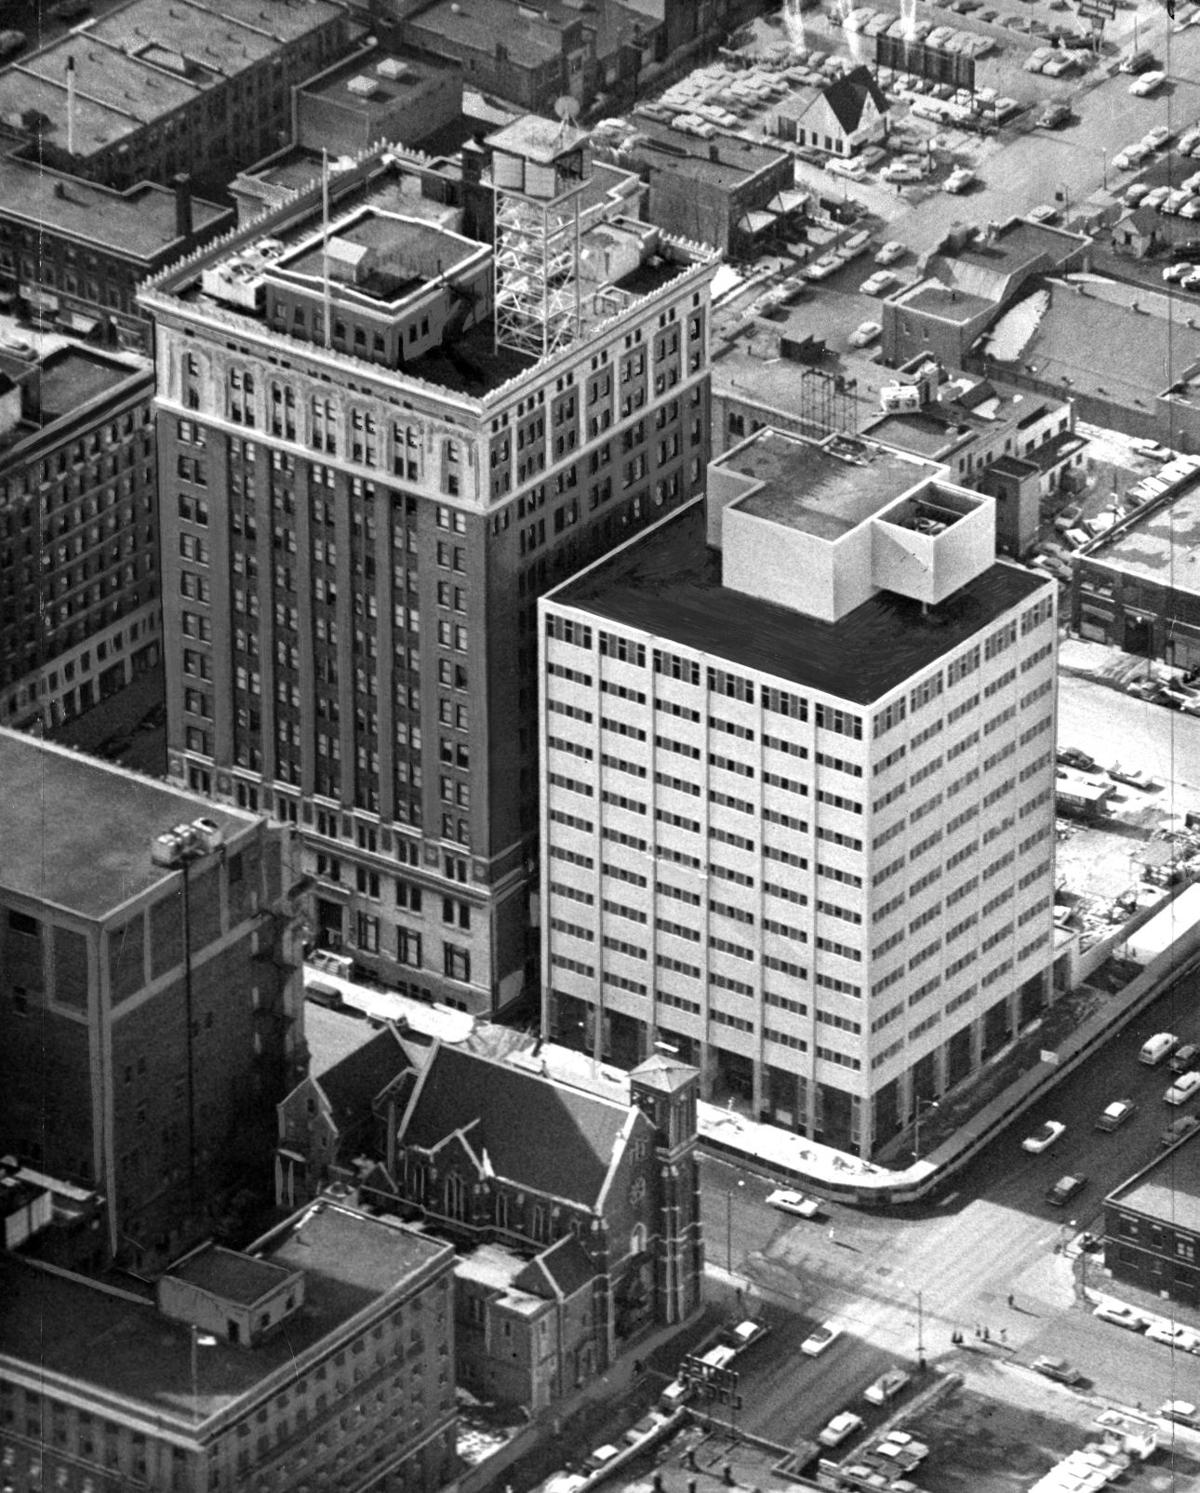 See over 200 historical photos from the Omaha World-Herald